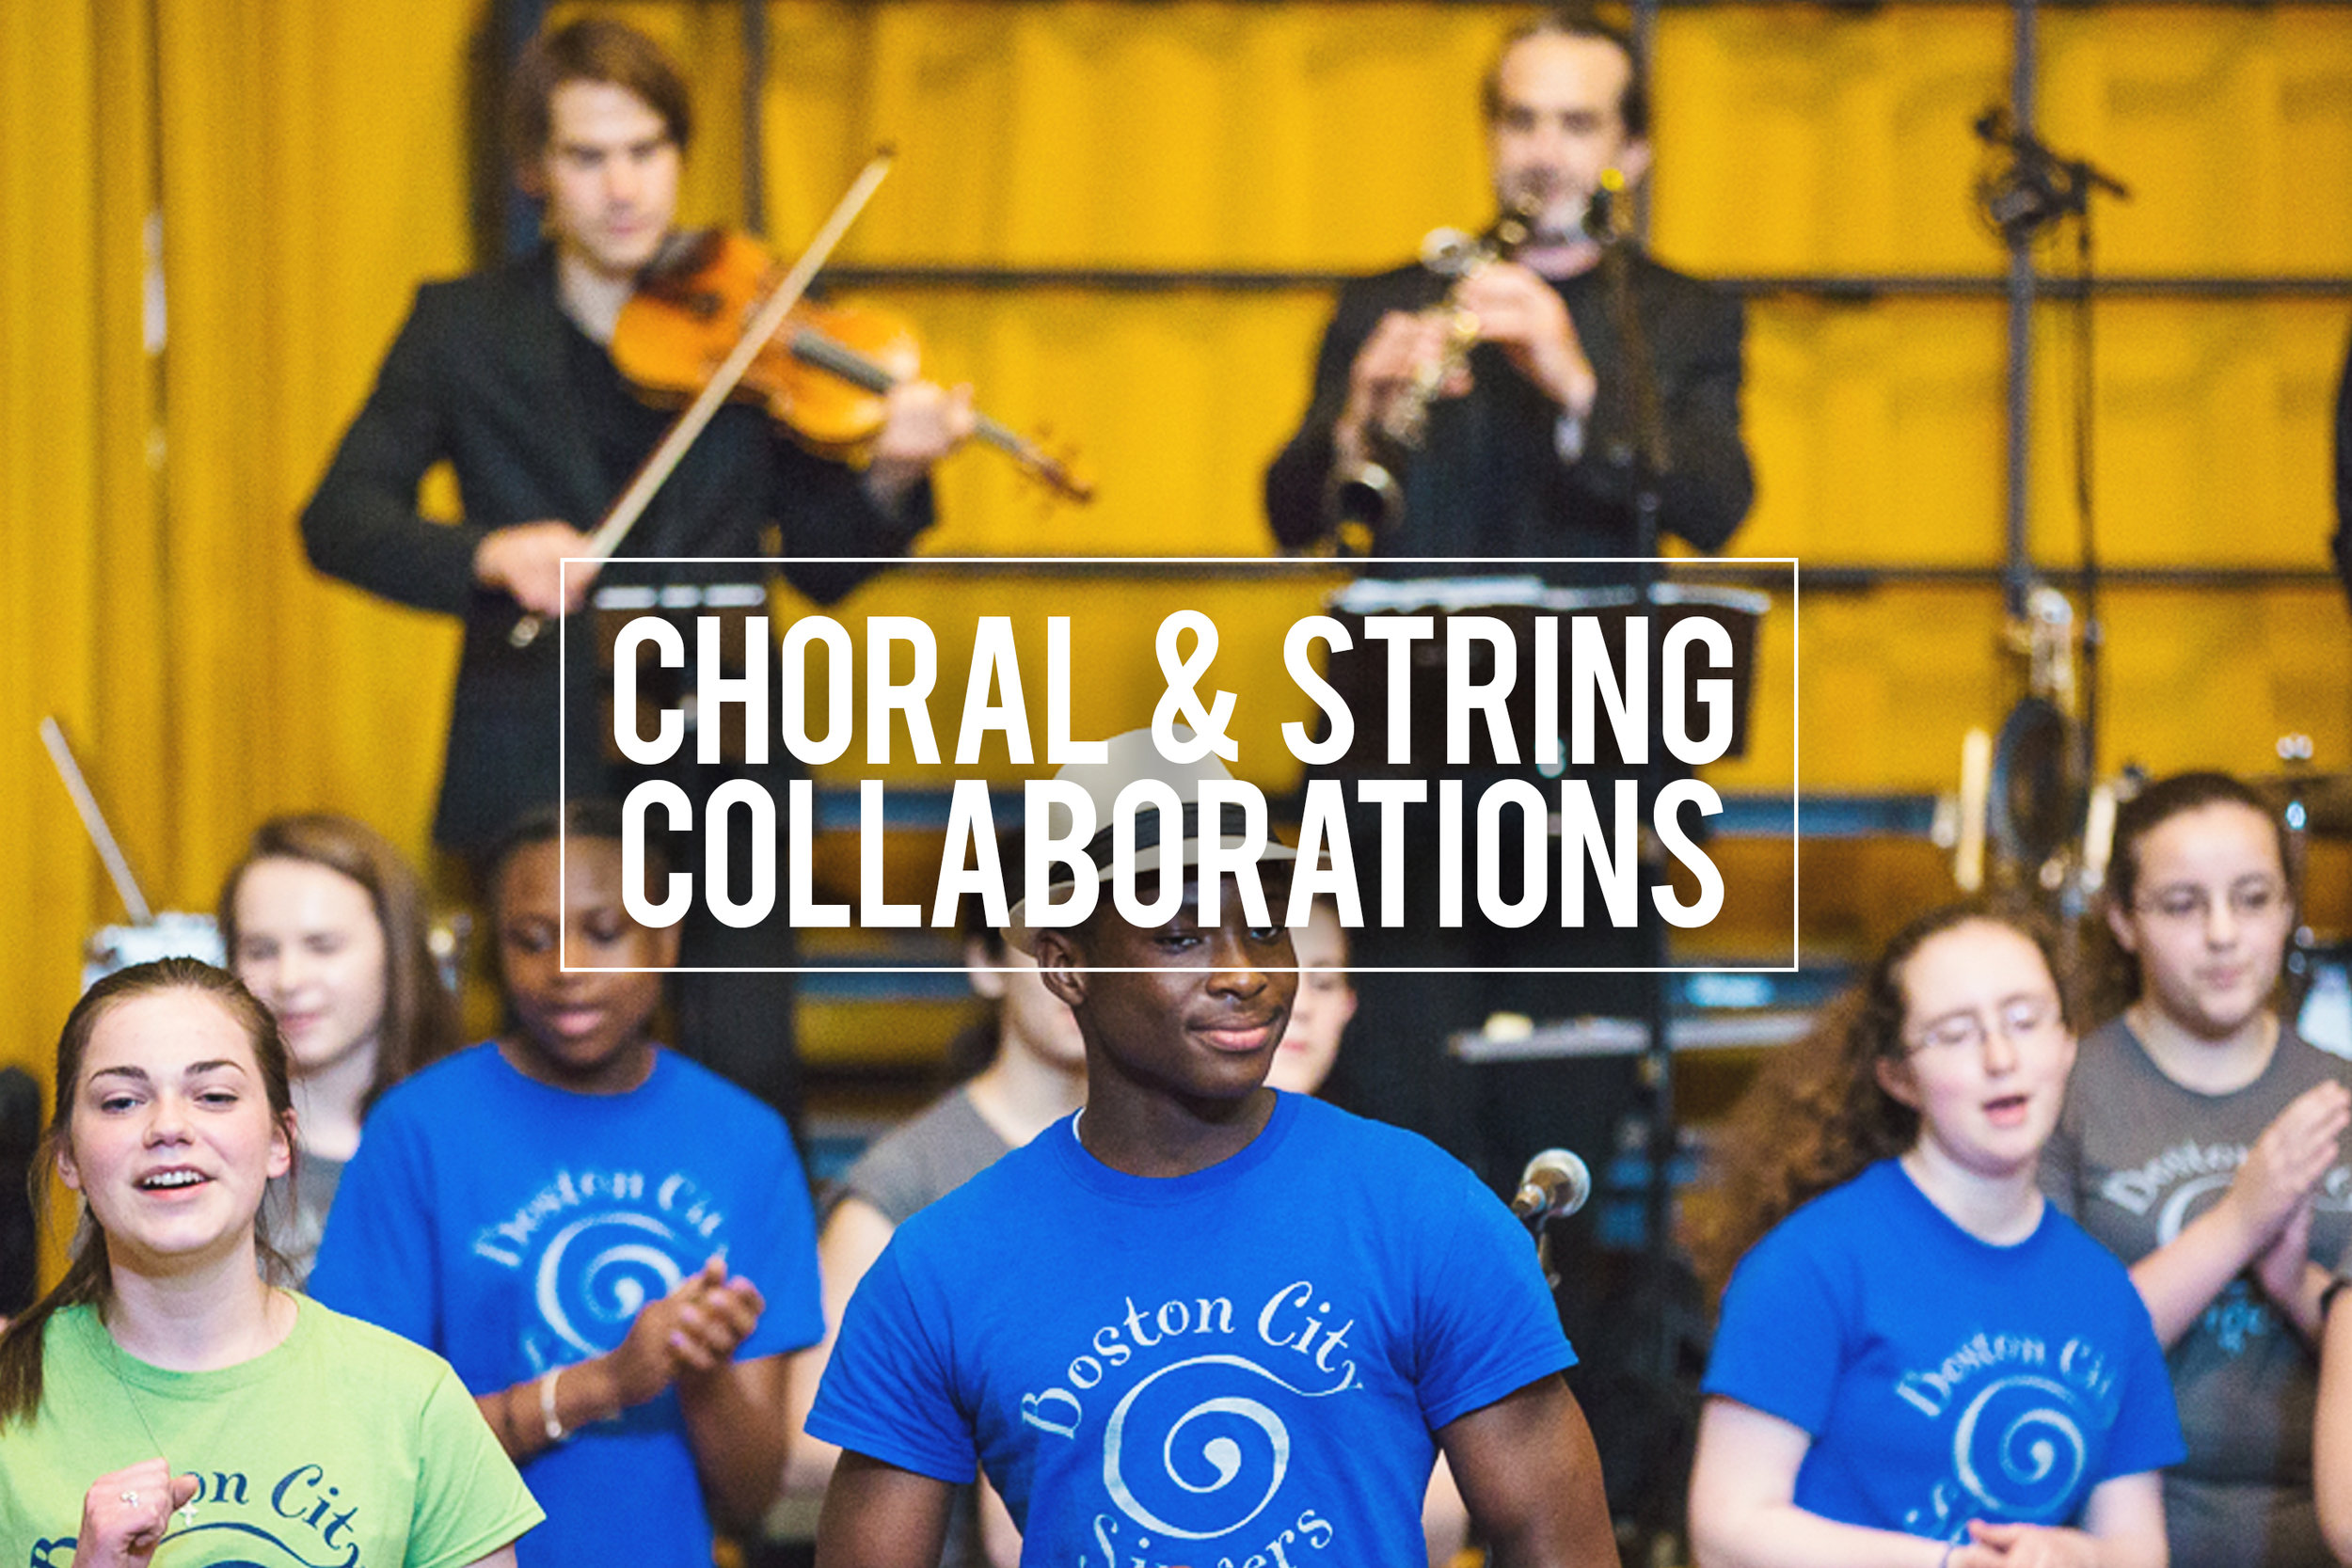 C ollaborations with community, student & professional ensembles